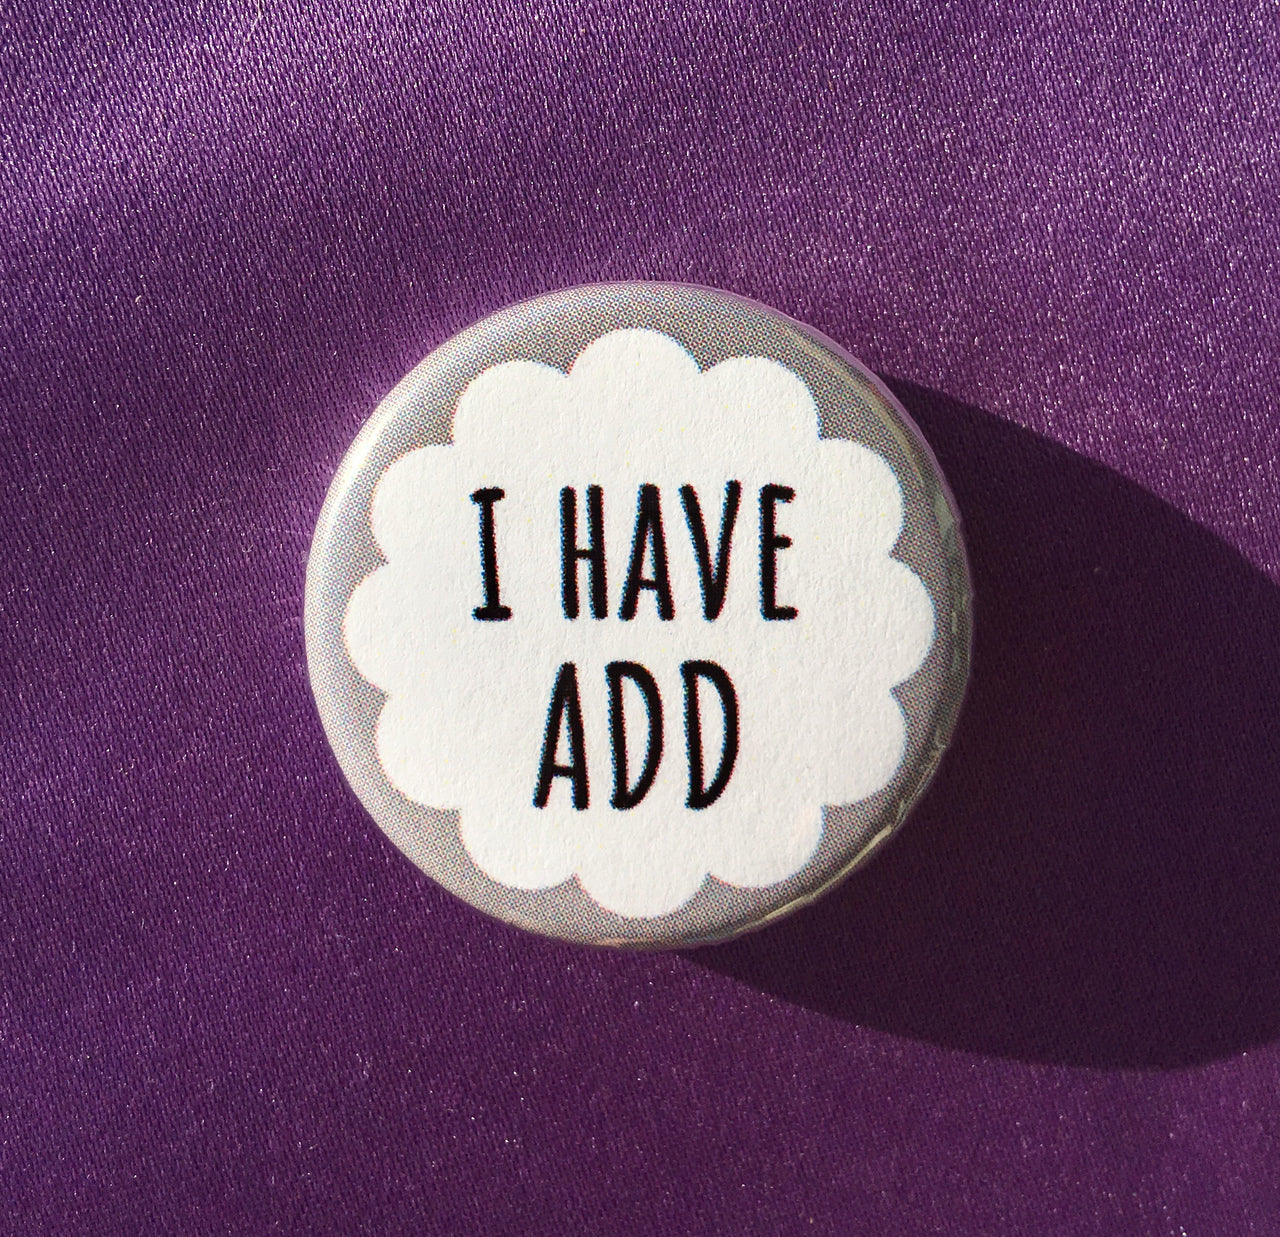 I have ADD - Radical Buttons